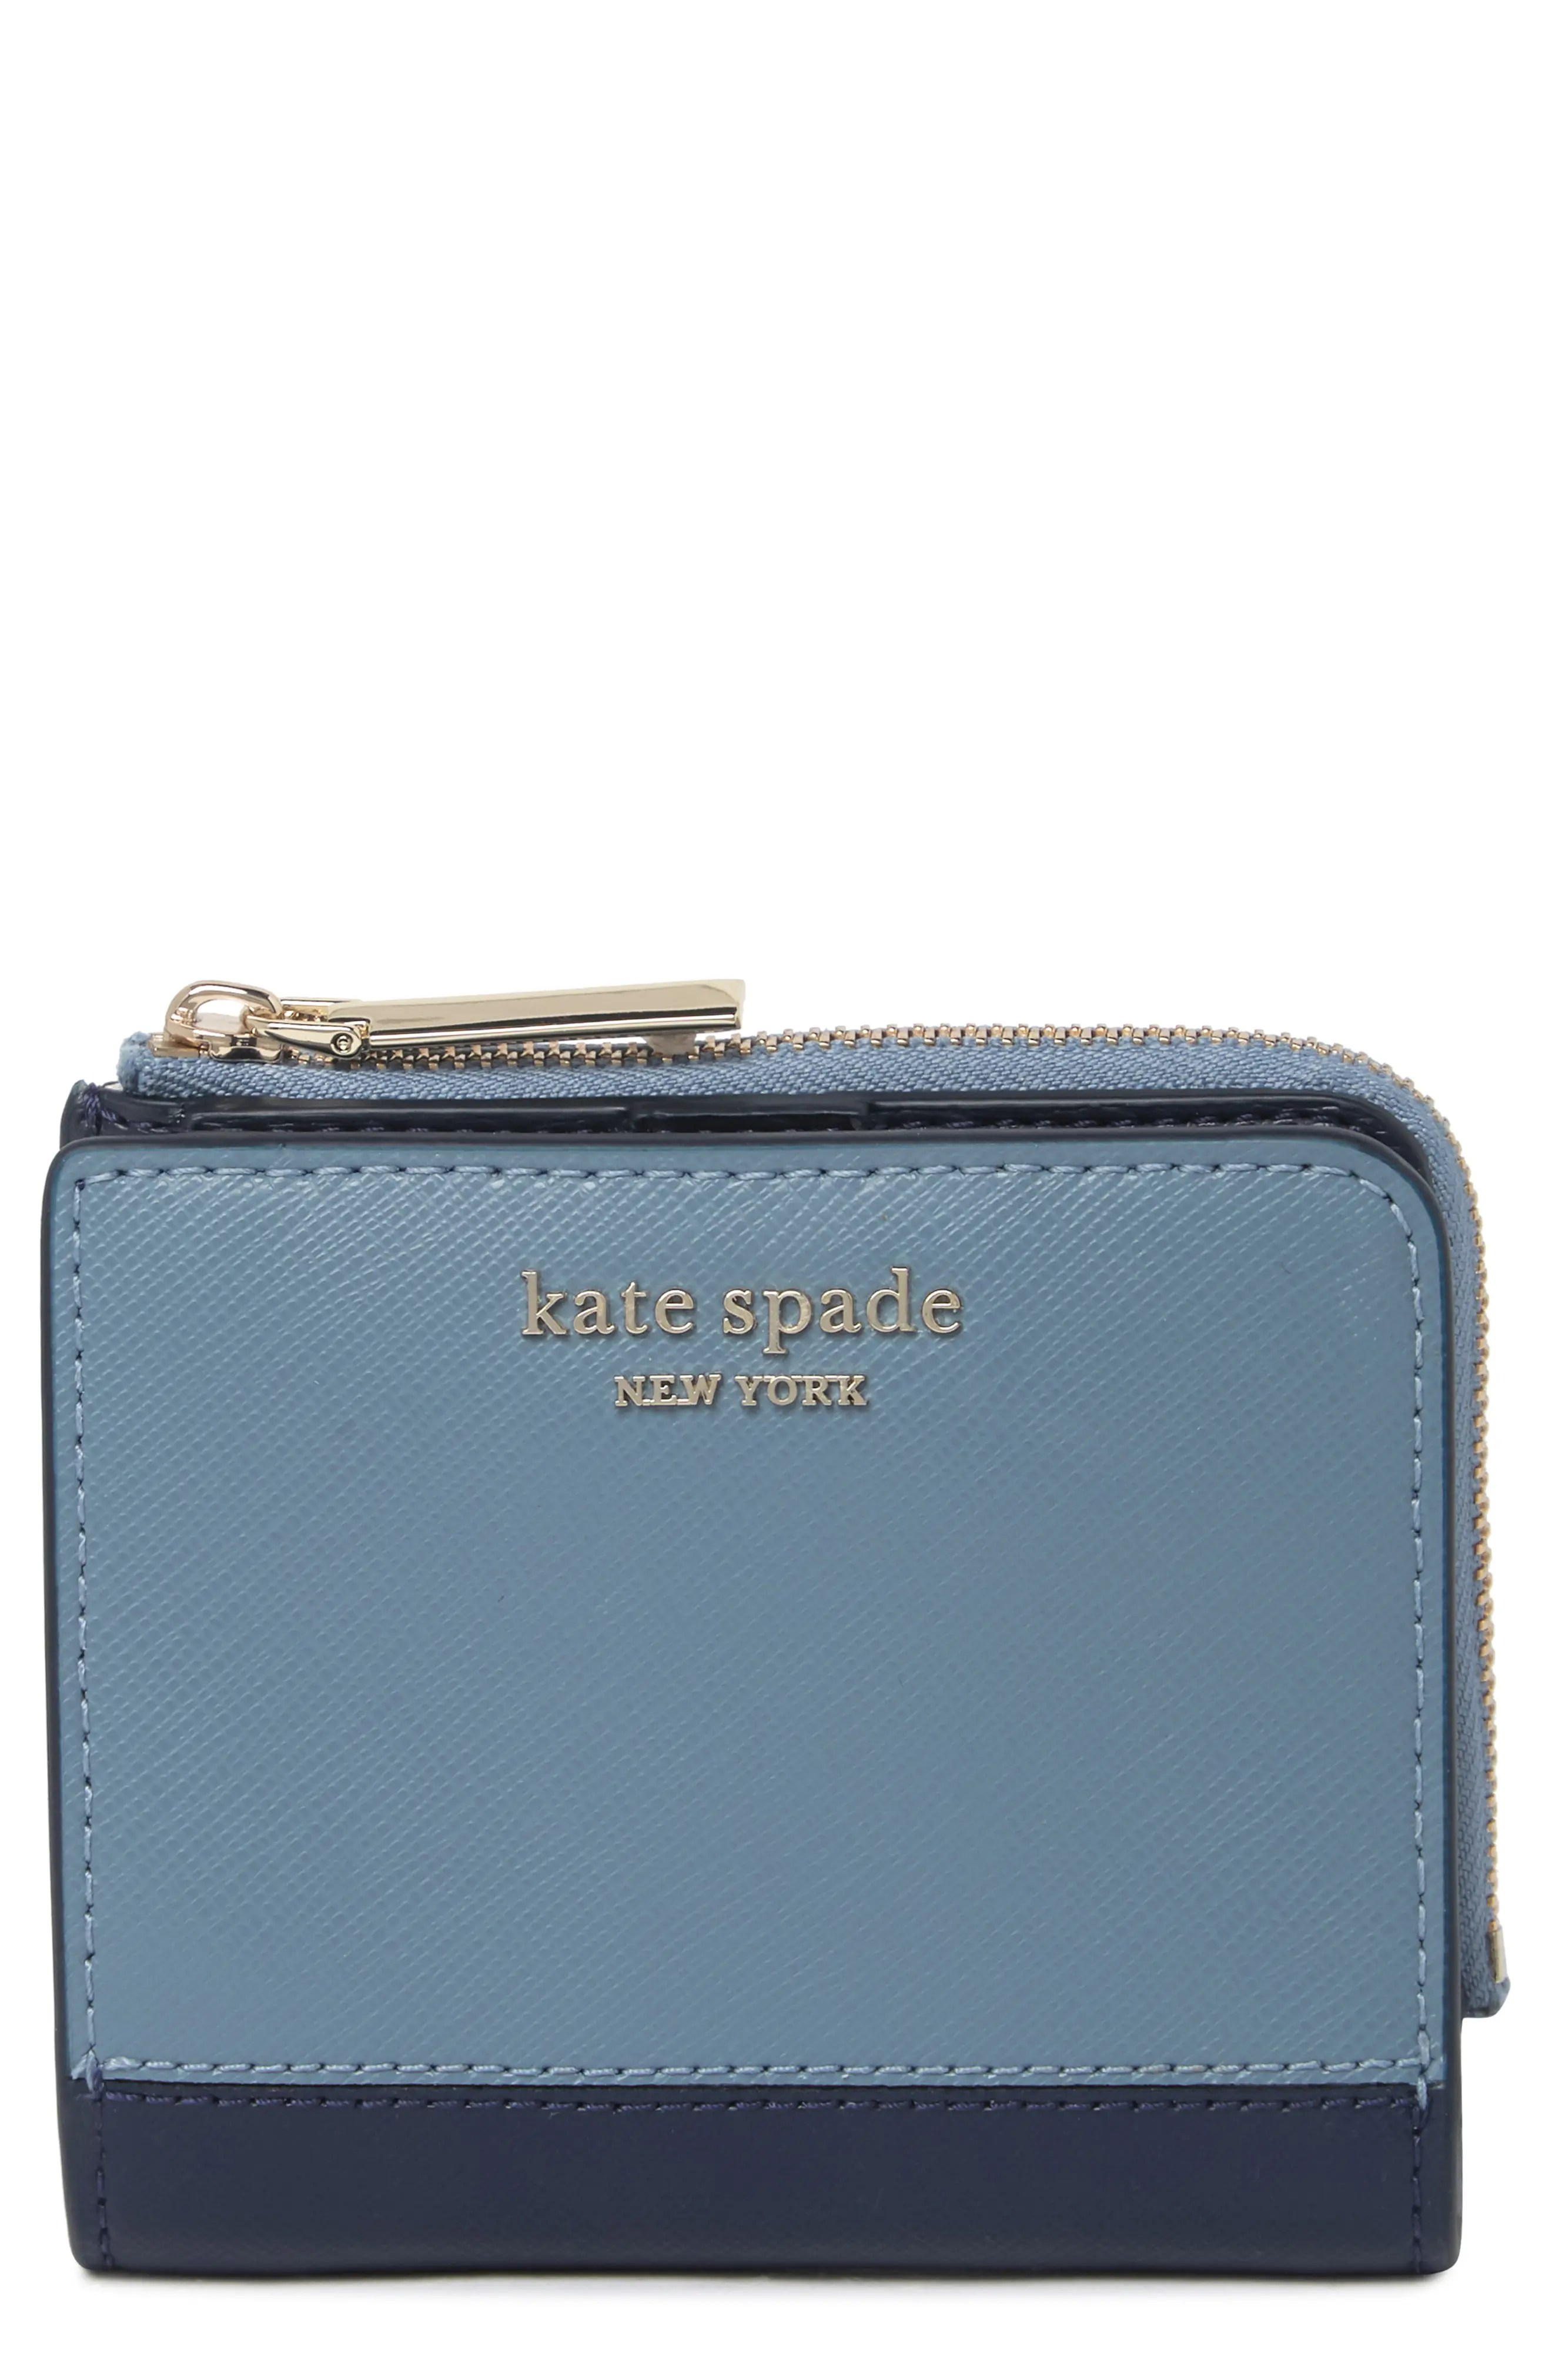 kate spade new york wallets for women